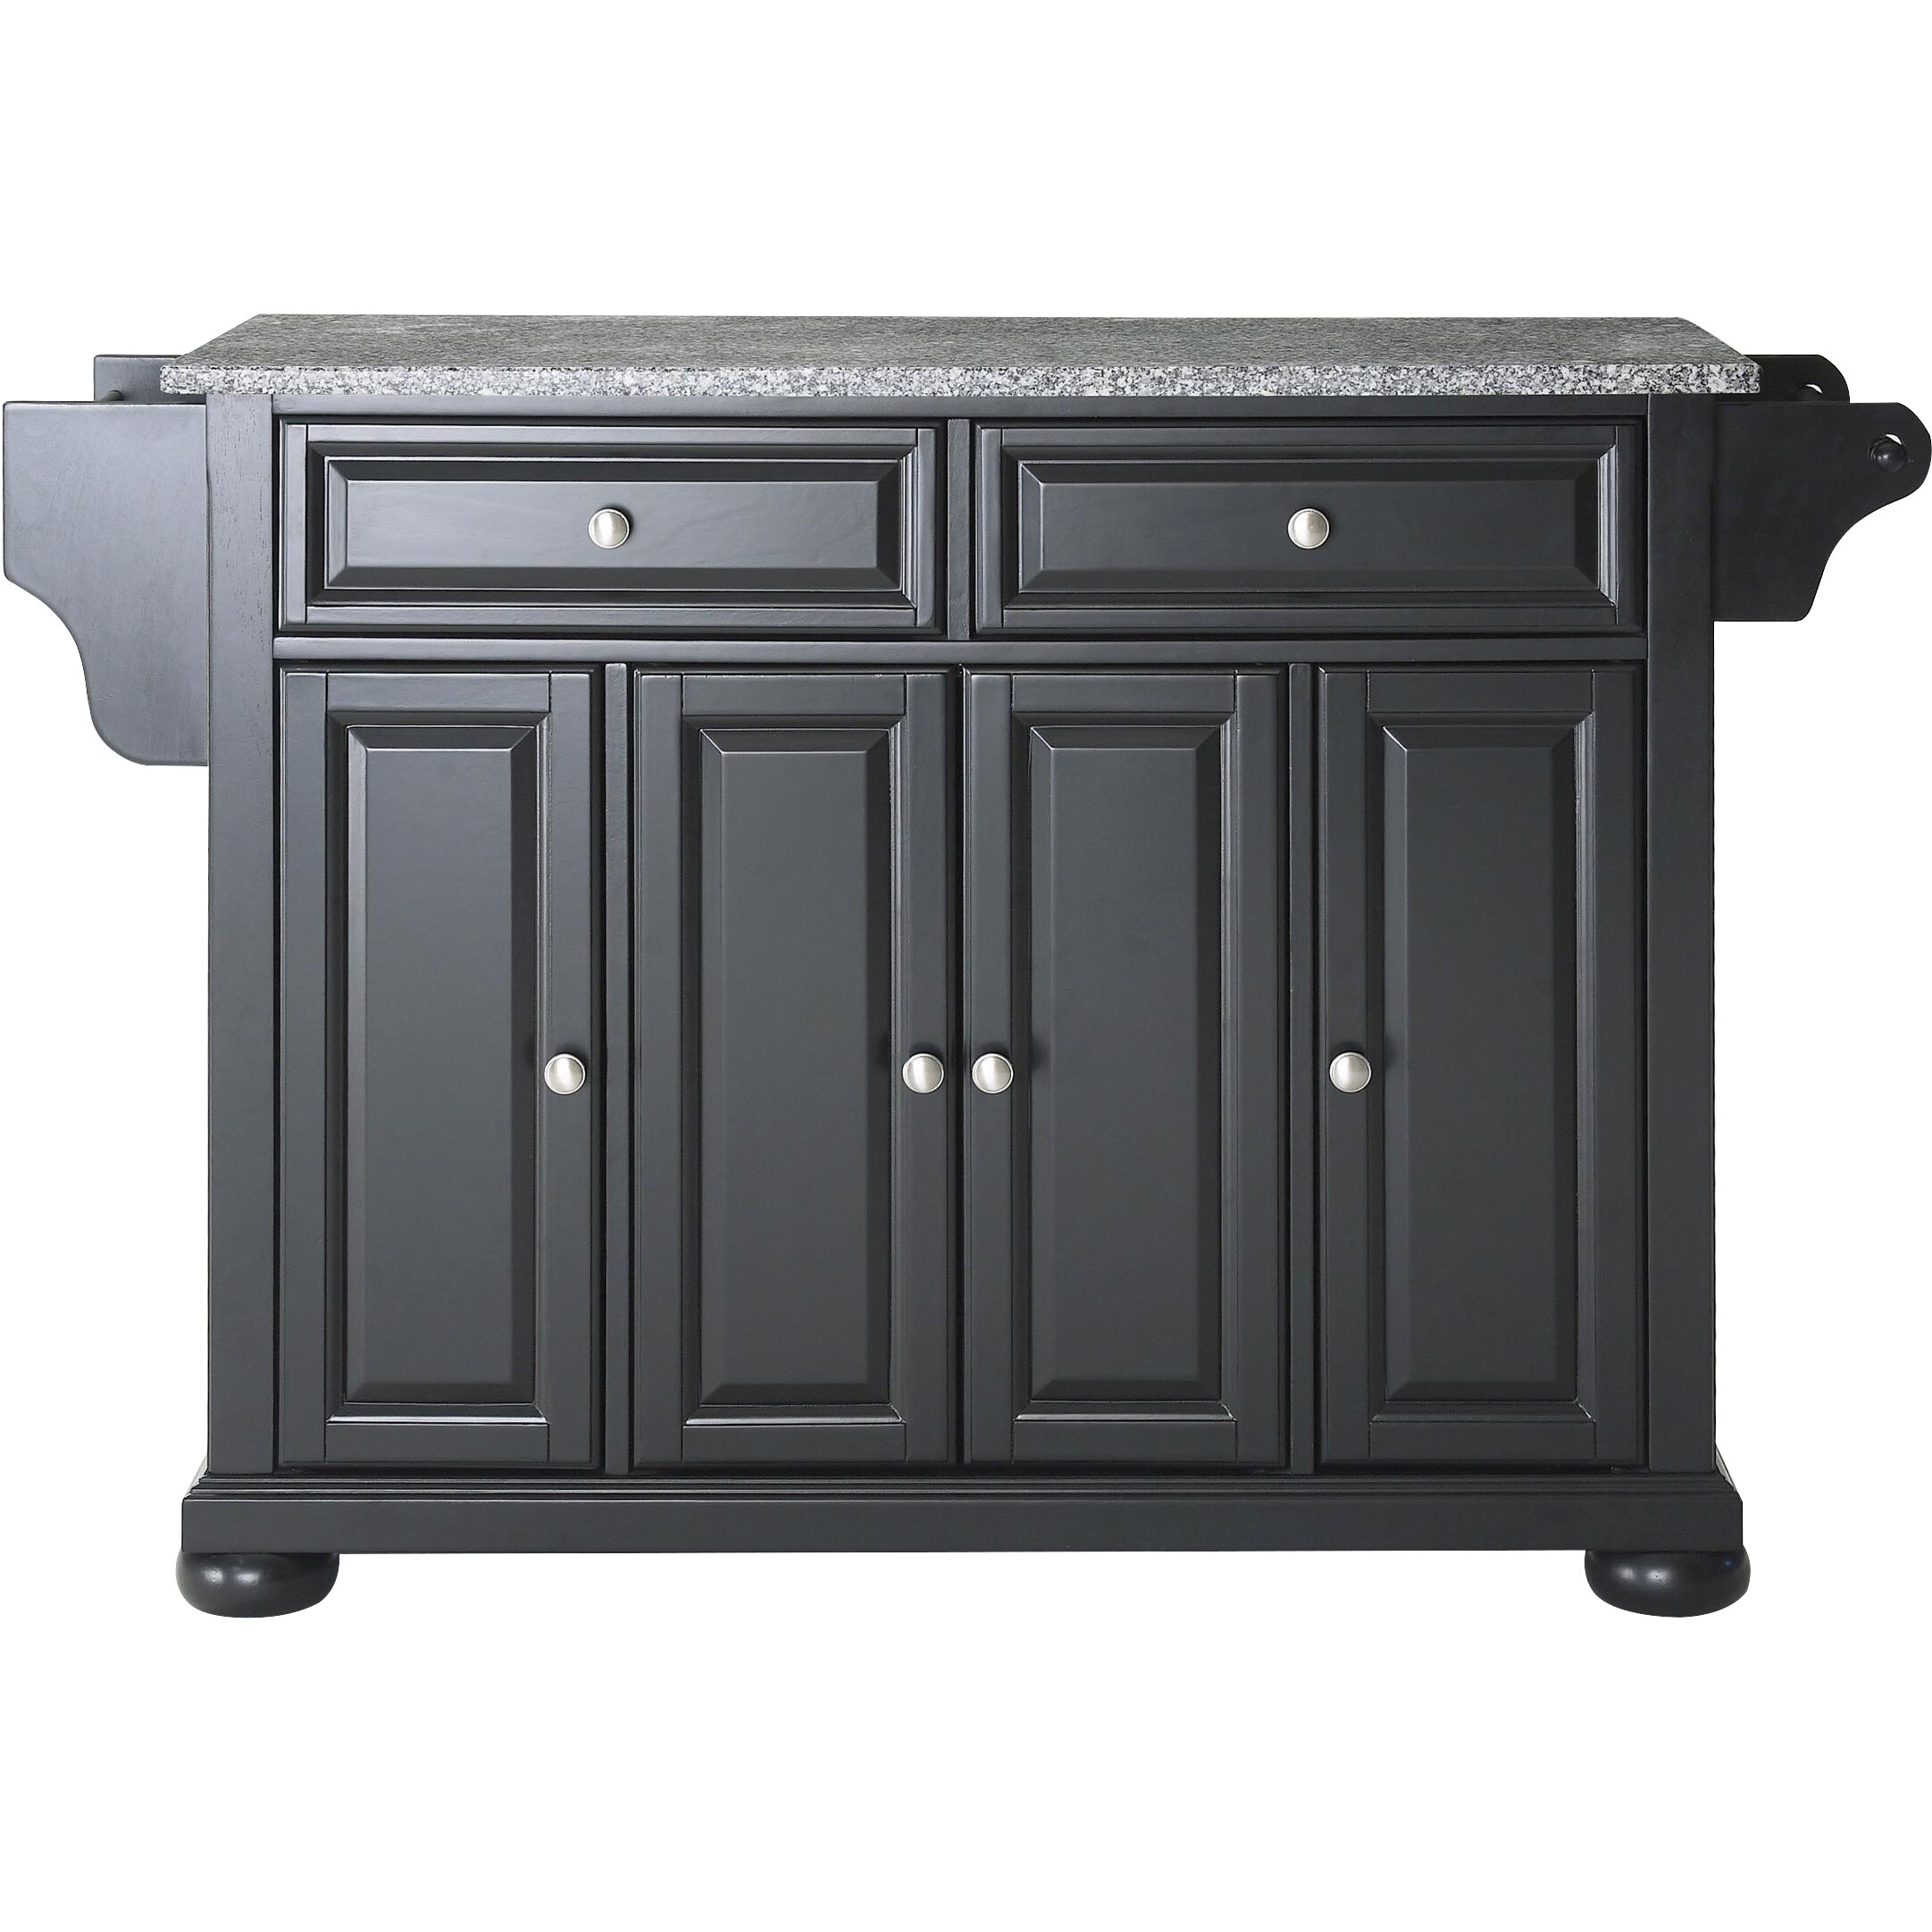 darby home co pottstown kitchen island with granite top & reviews